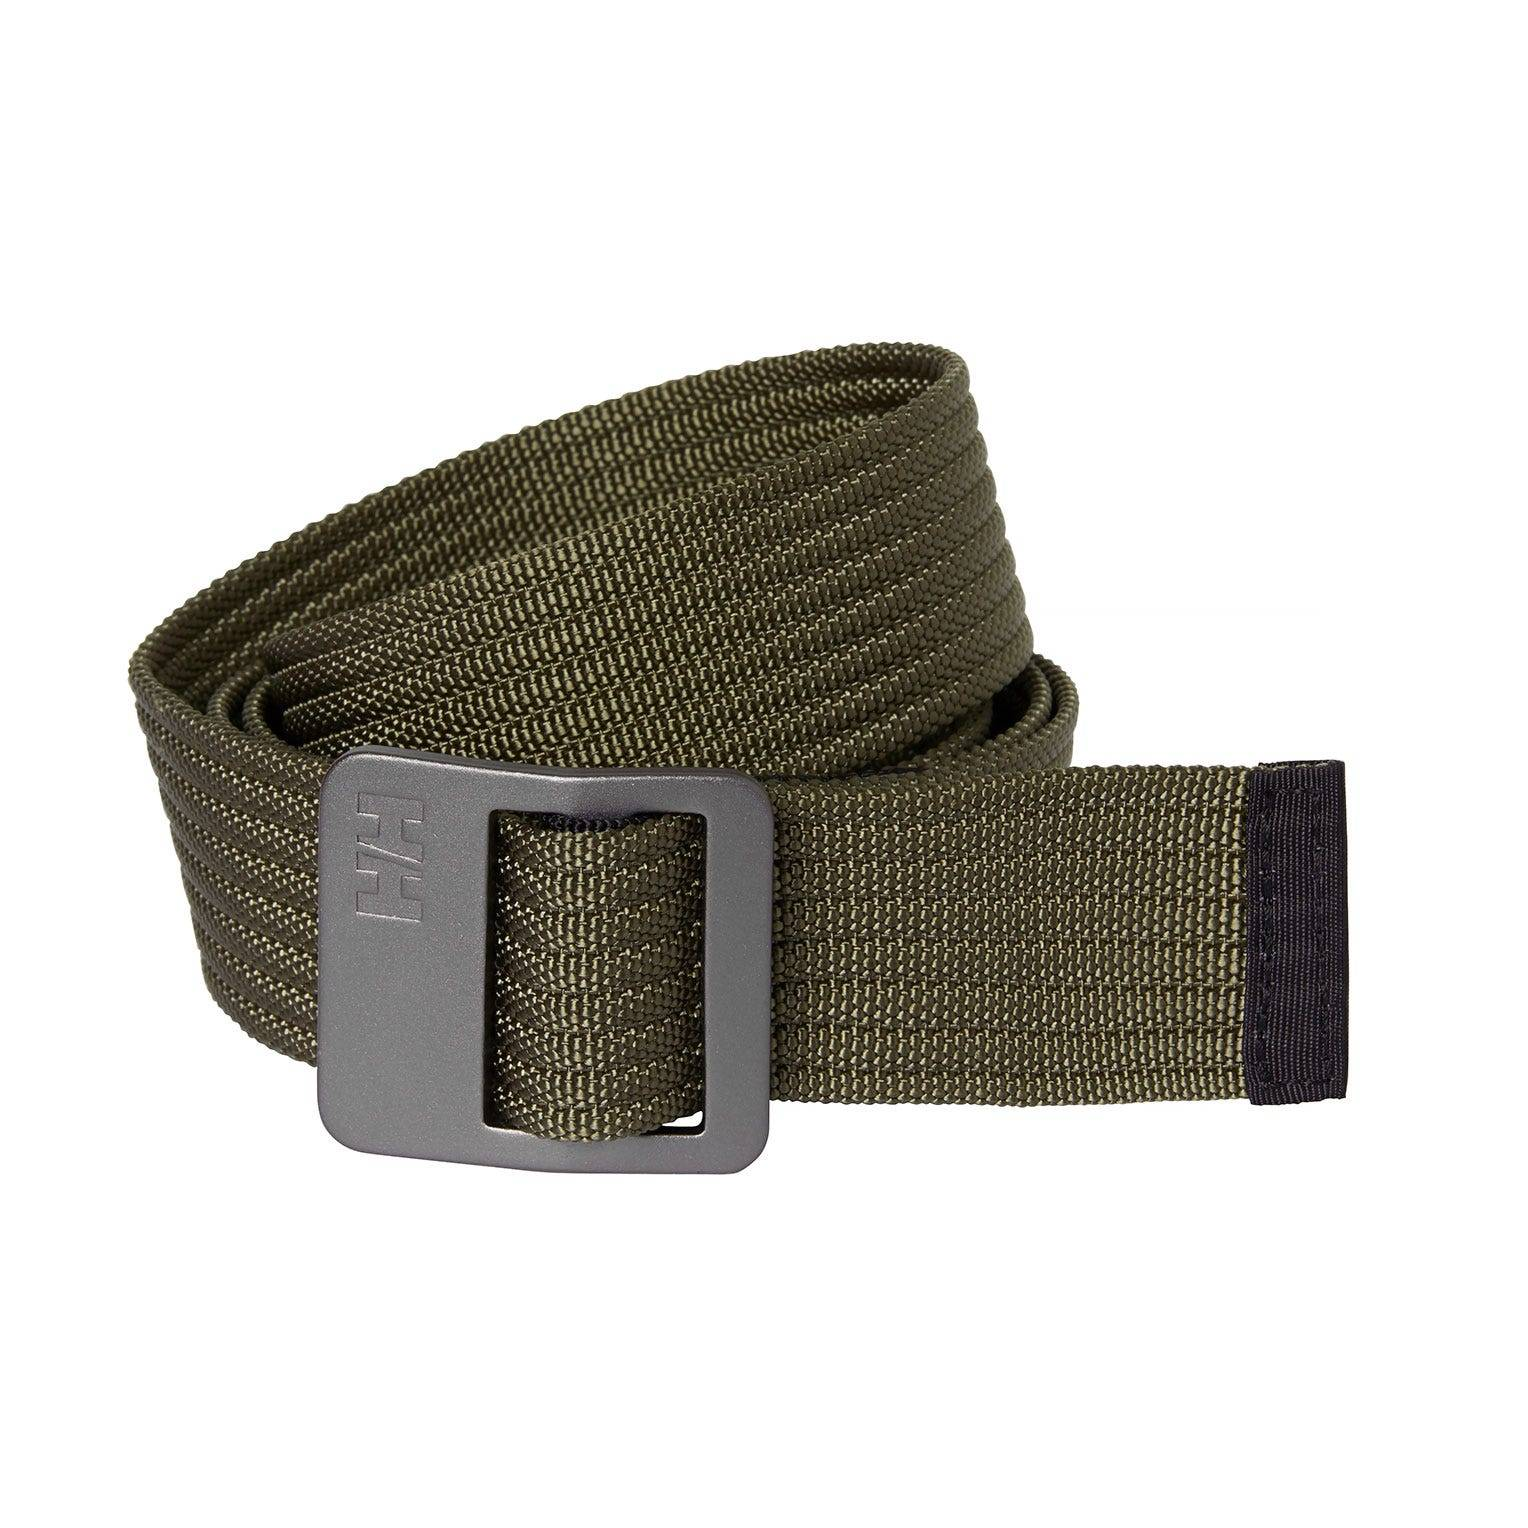 Helly Hansen Webbing Belt Green 130